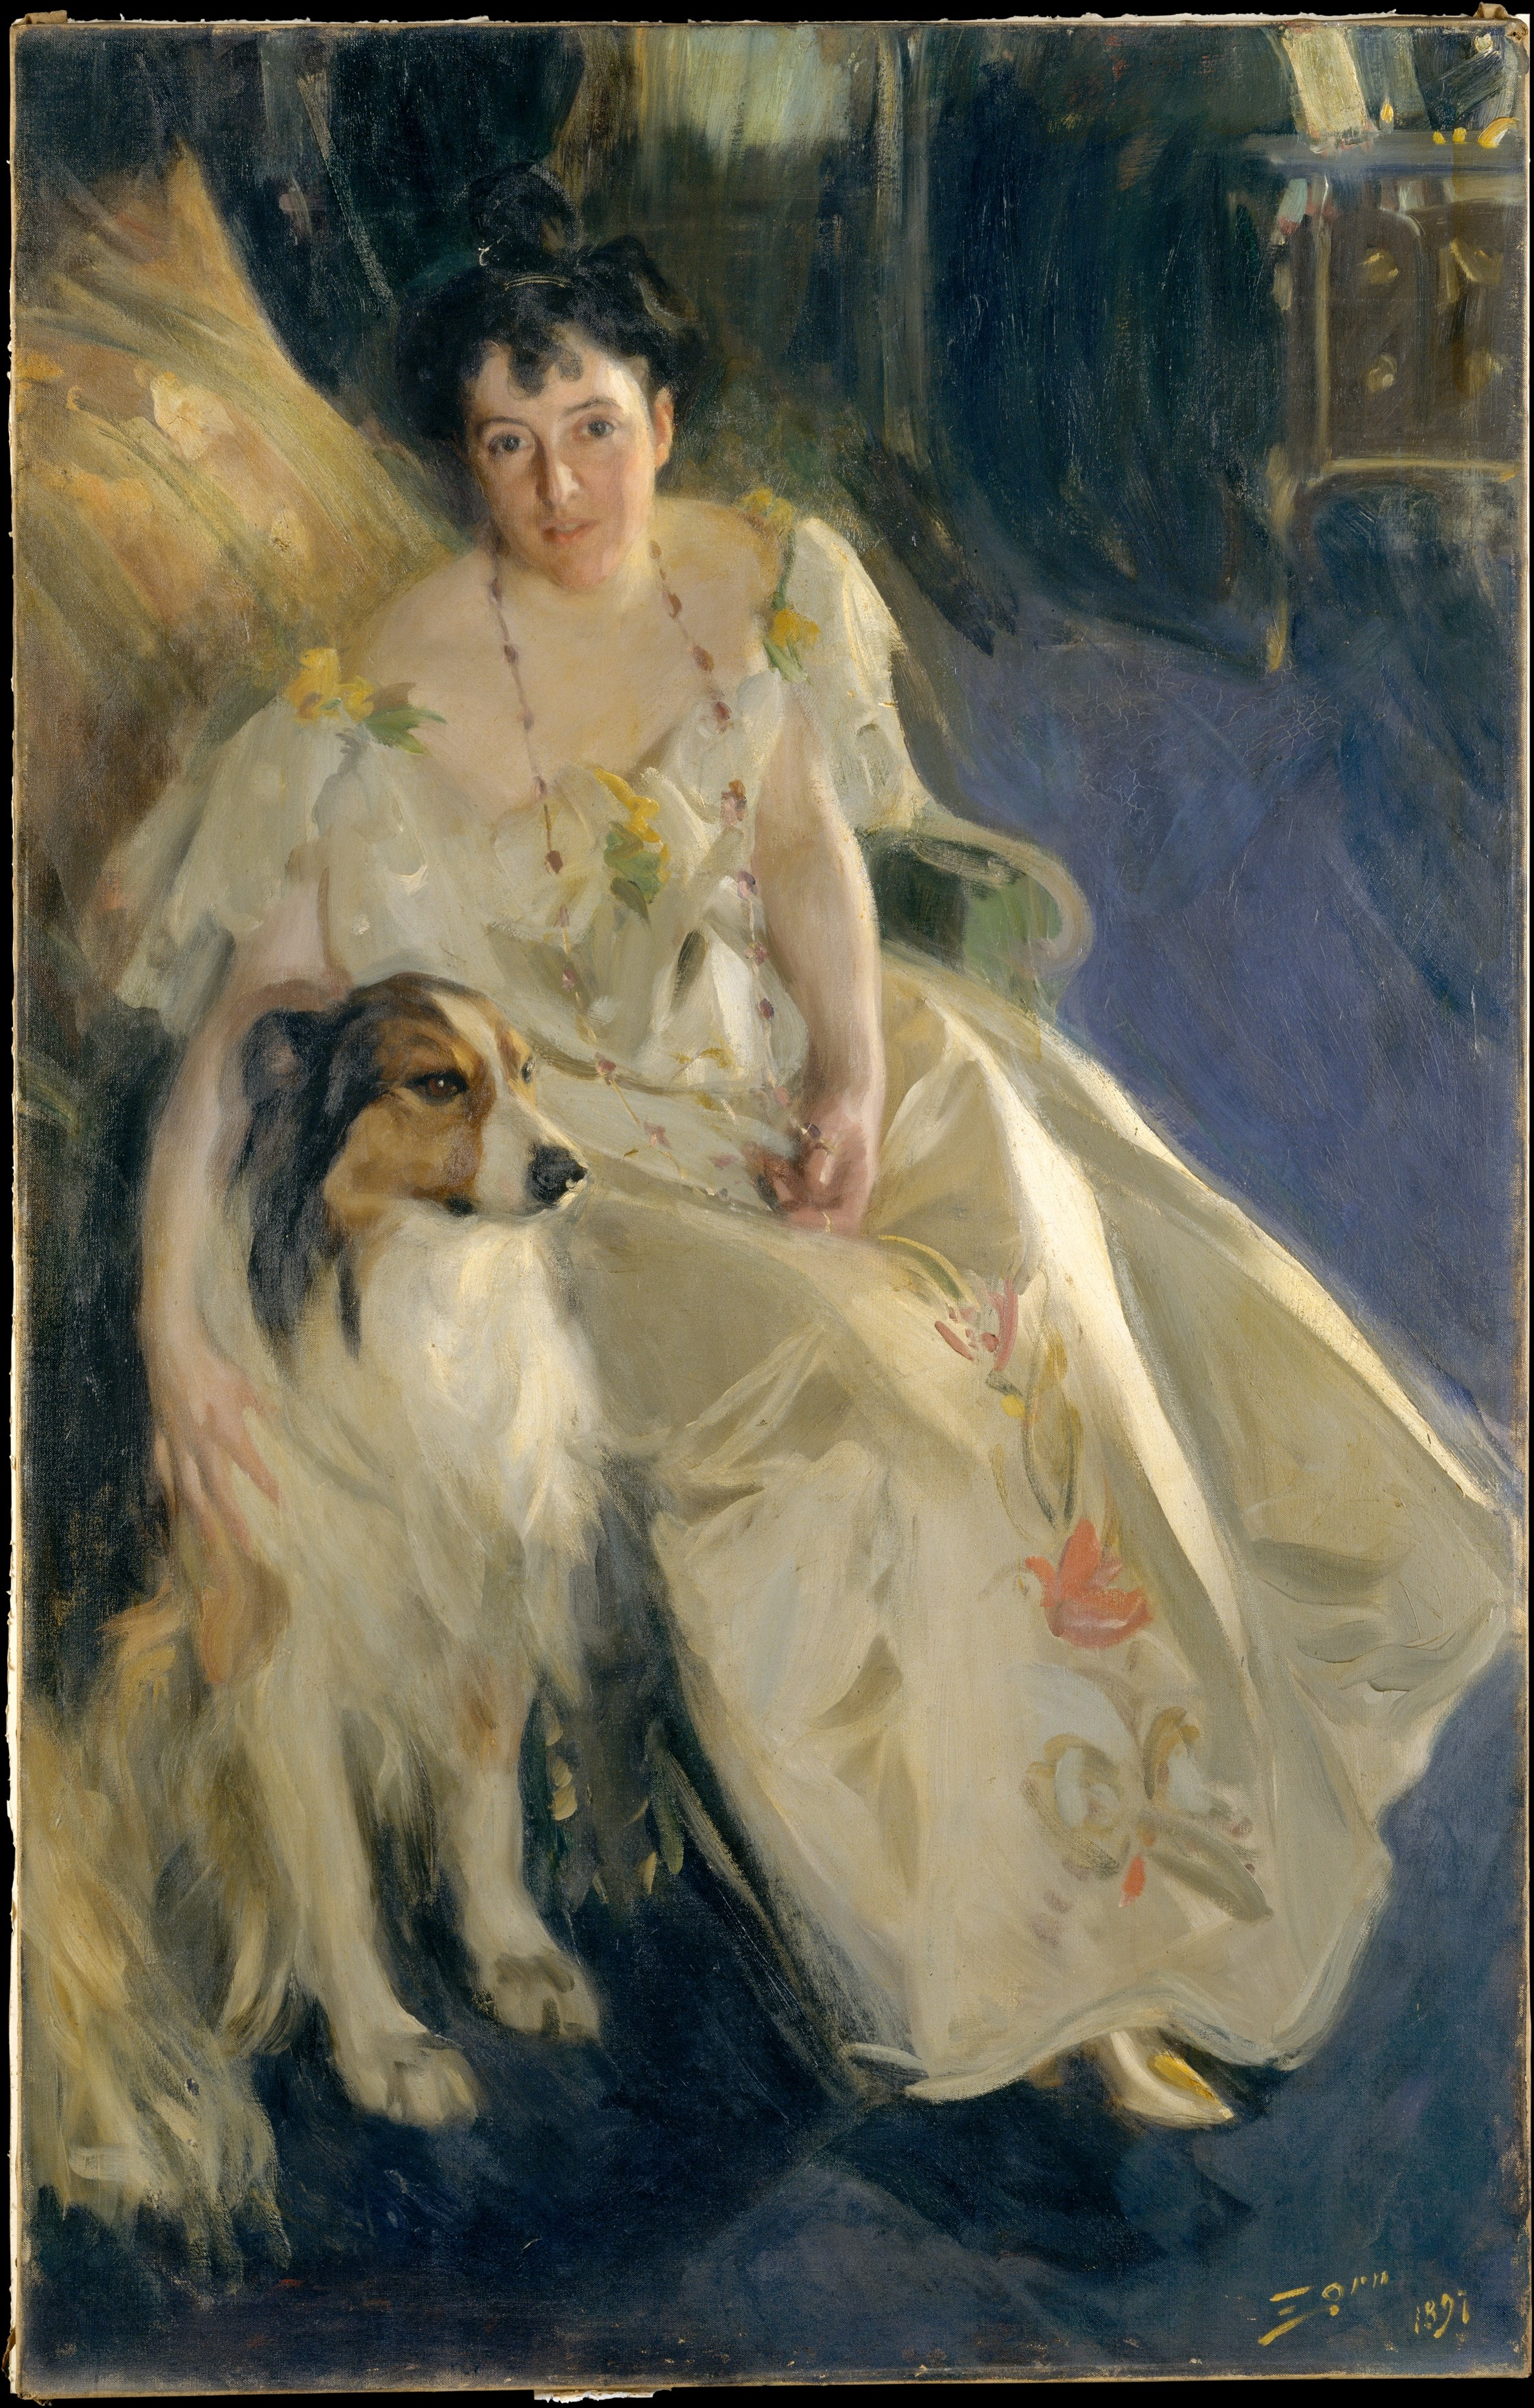 Anders Leonard Zorn (Swedish, 1860–1920), Mrs. Walter Rathbone Bacon (Virginia Purdy Barker, 1862–1919), 1897. Oil on canvas. The Metropolitan Museum of Art, Gift of Mrs. Walter Rathbone Bacon, in memory of her husband, 1917, 17.204.